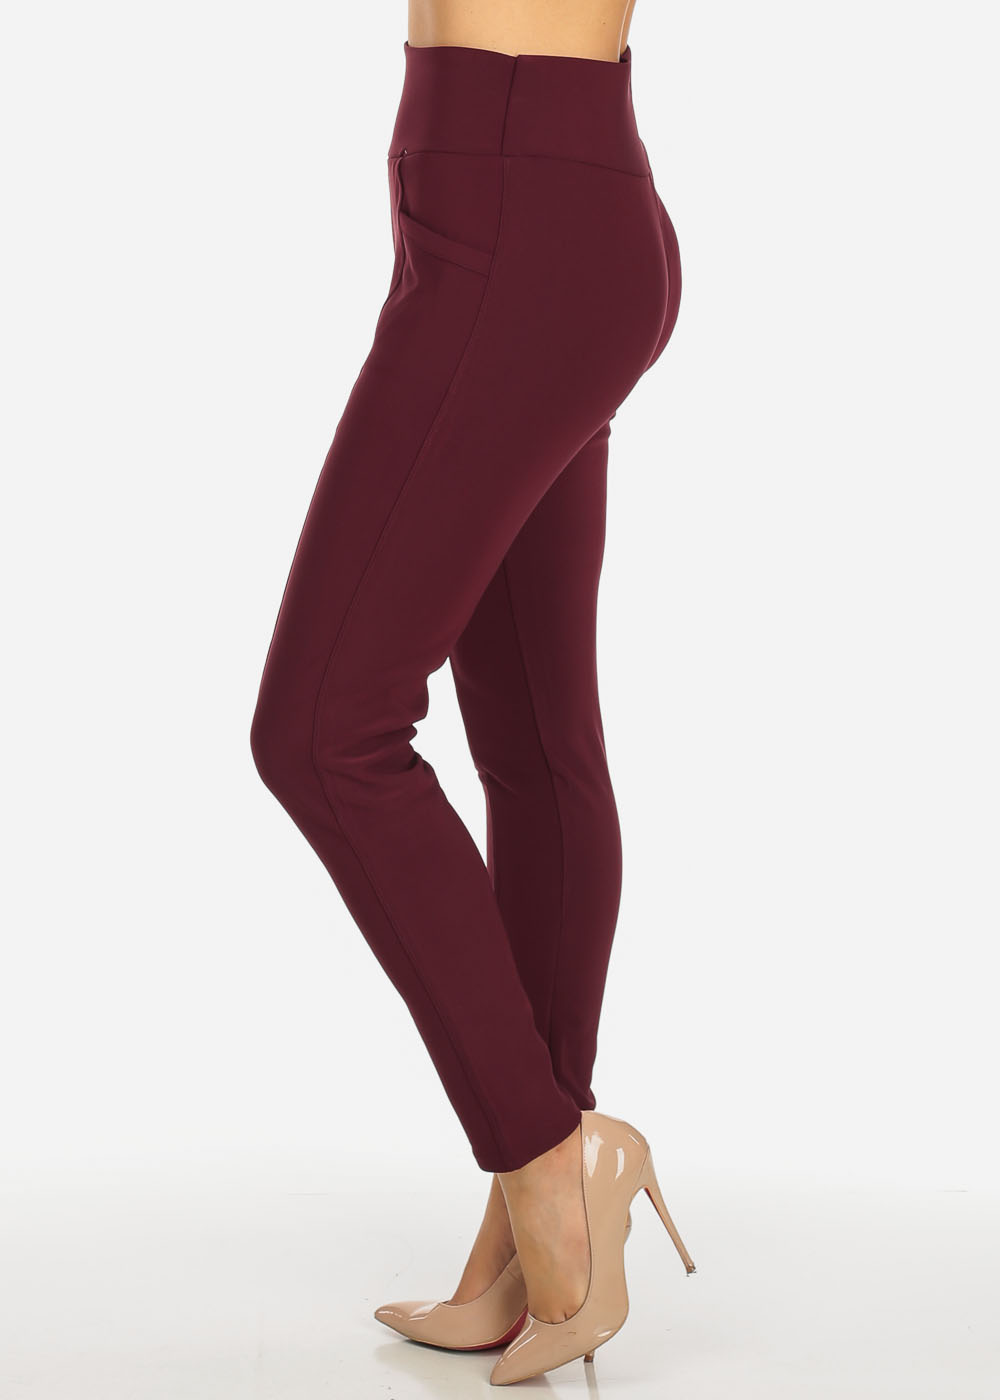 Womens Juniors One Size High Waist Stretchy Pull On Burgundy Skinny Pants 41011H